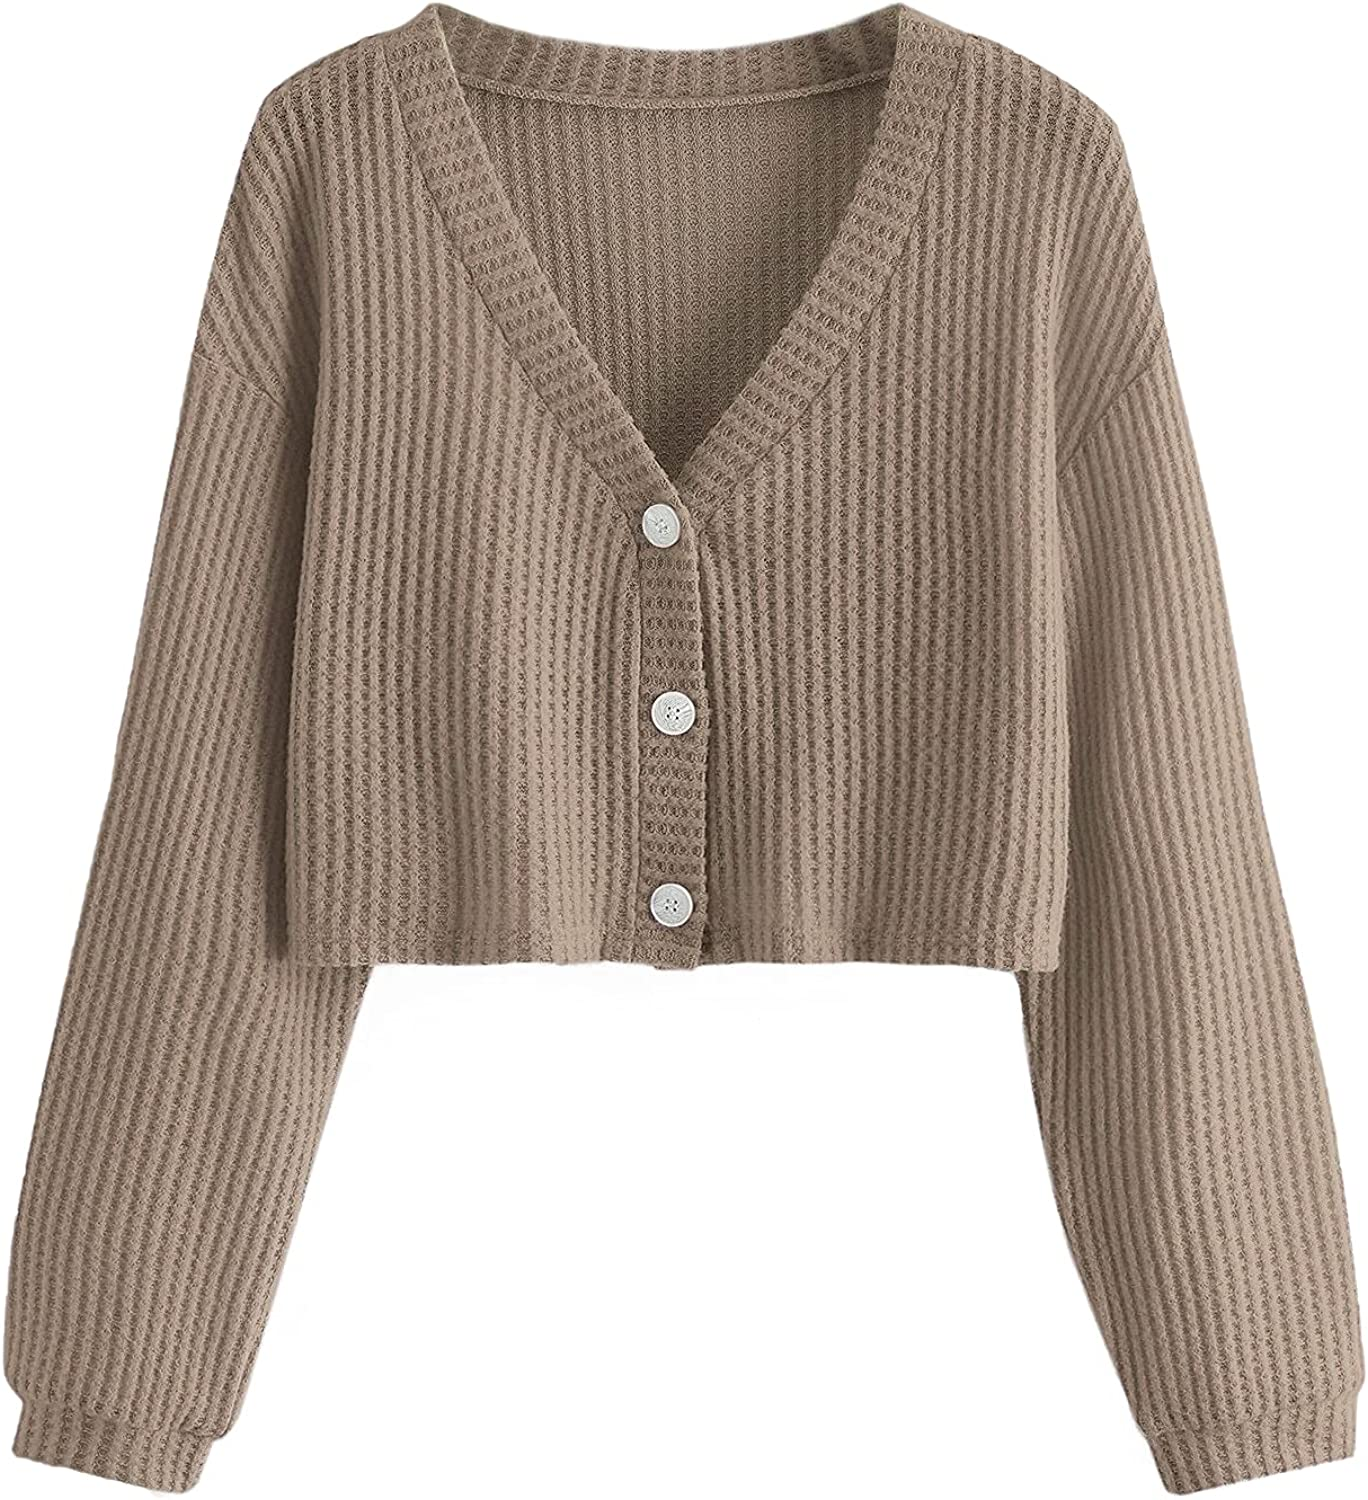 Women's Plus Size Long Sleeve Cardigan Sweater Button Down Knit Cardigan for Women Fall Square Neck Soft Casual Top